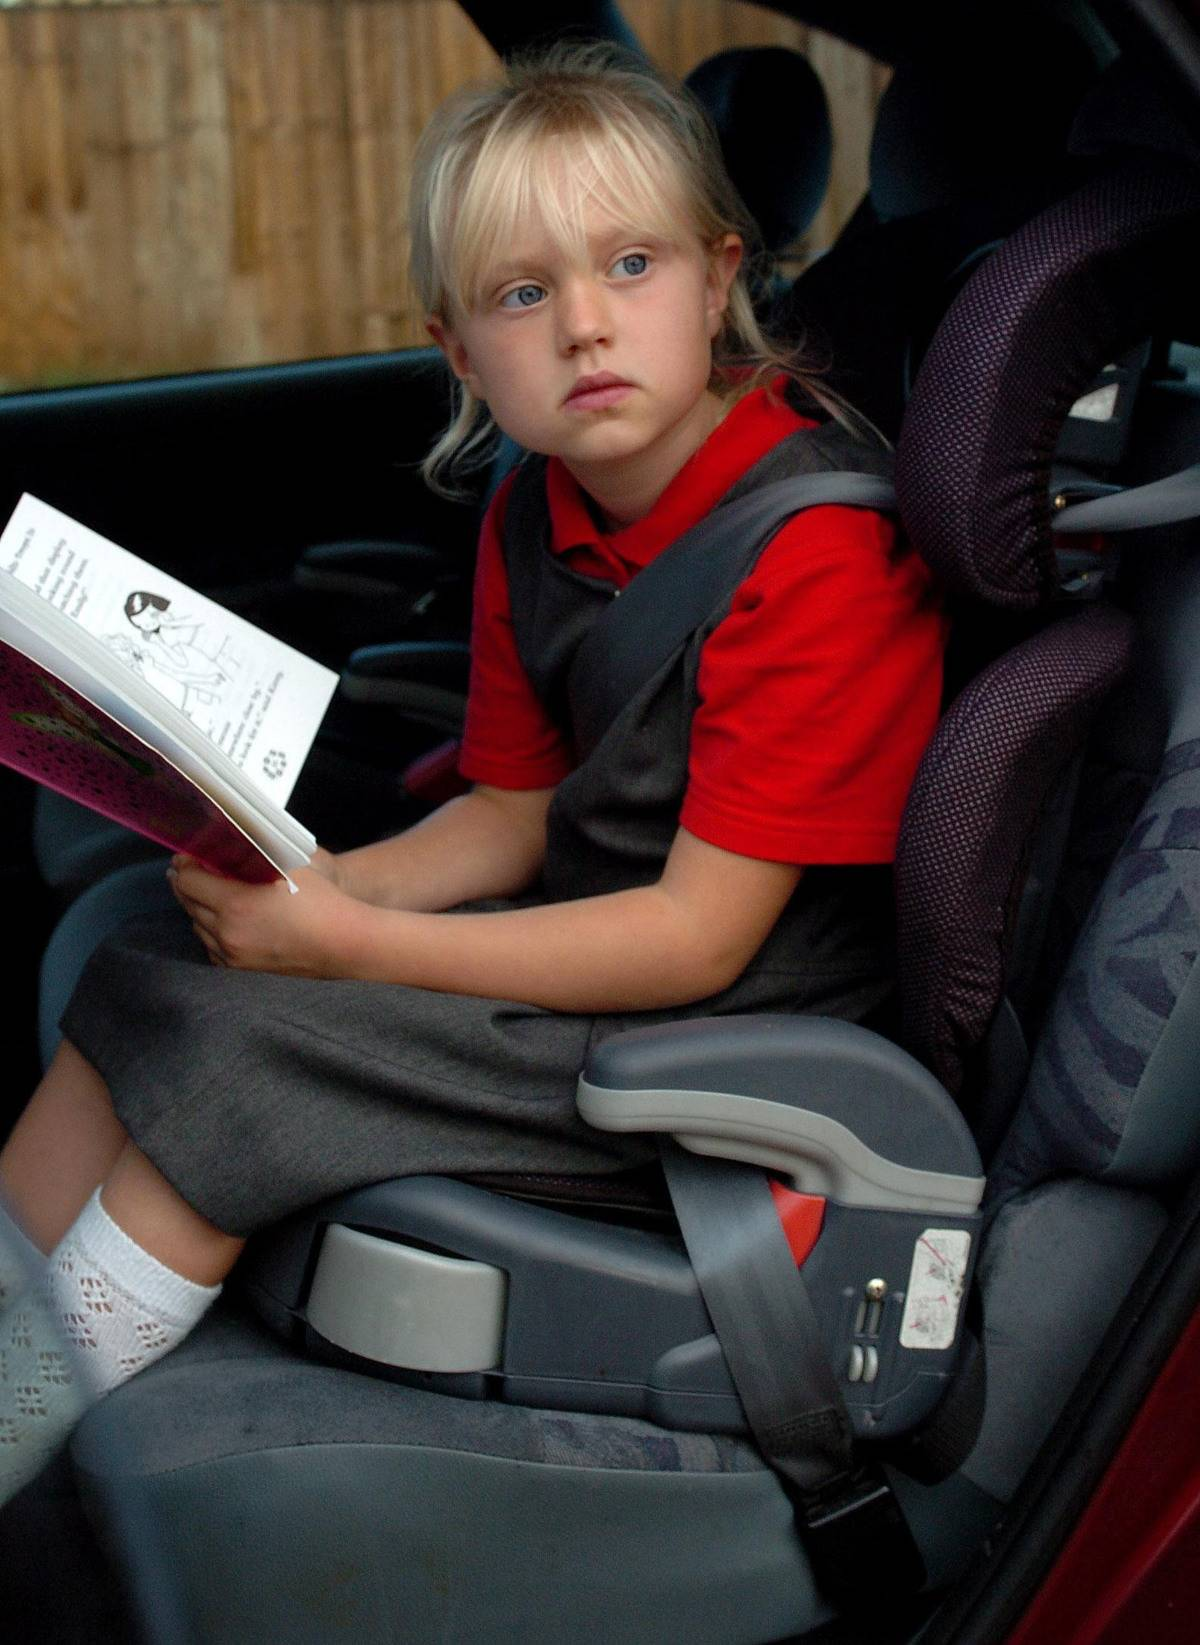 seven-year-old girl using a car seat